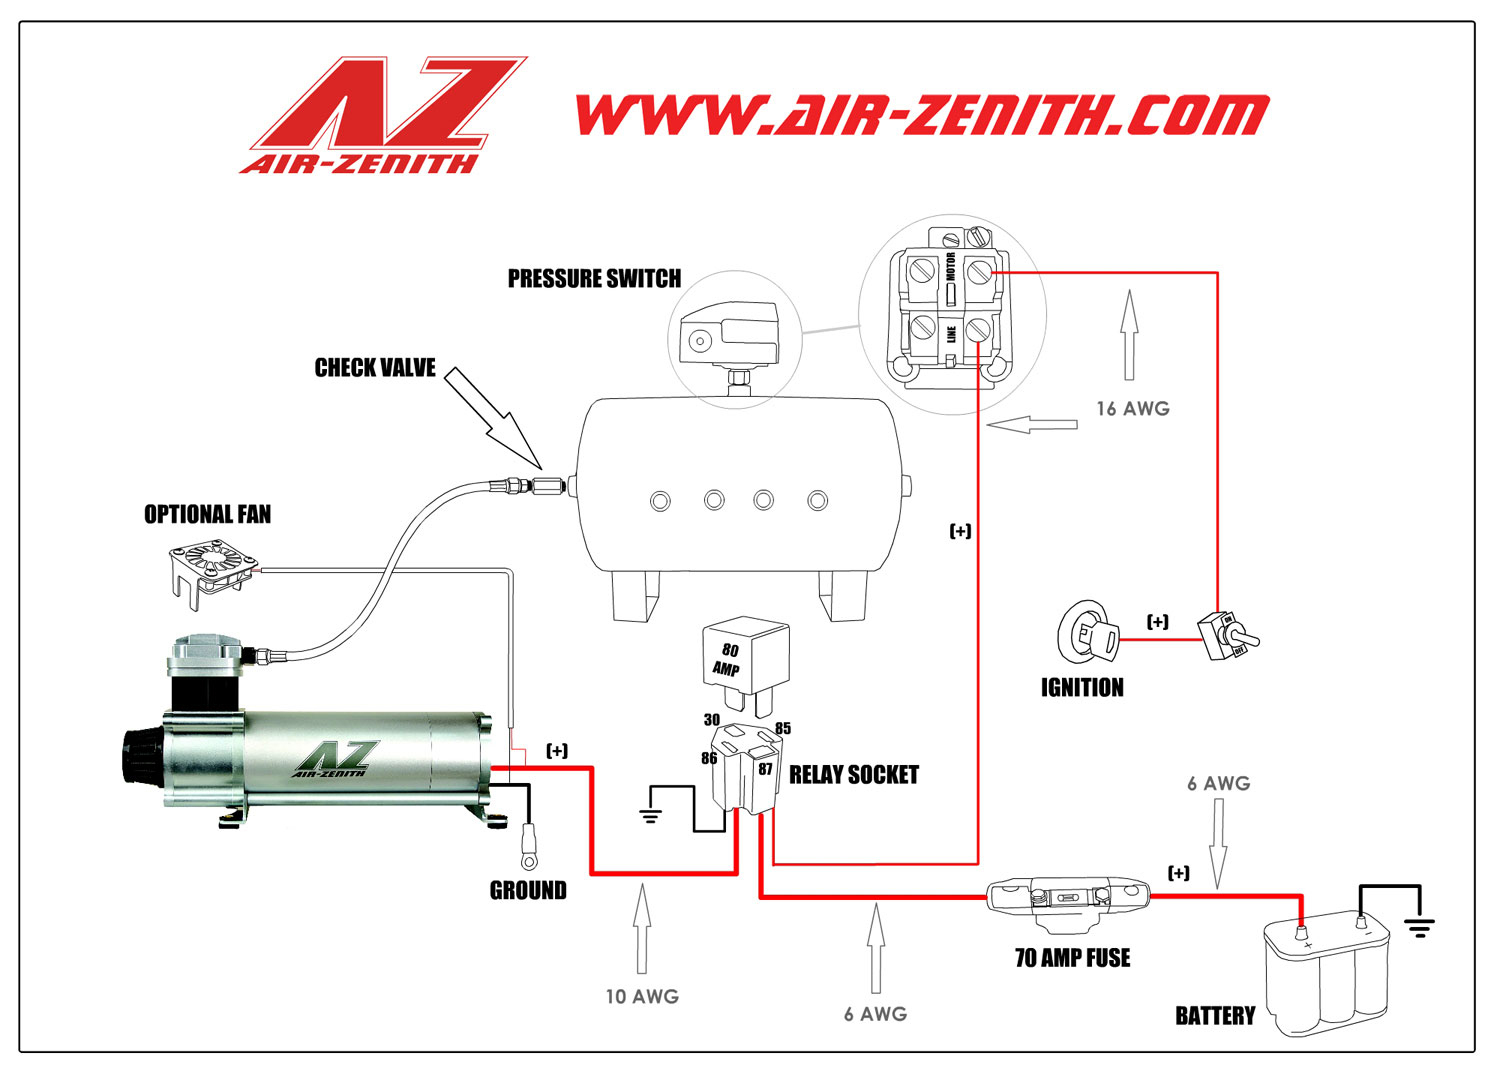 240V Air Compressor Wiring Diagram | Manual E-Books - Air Compressor Wiring Diagram